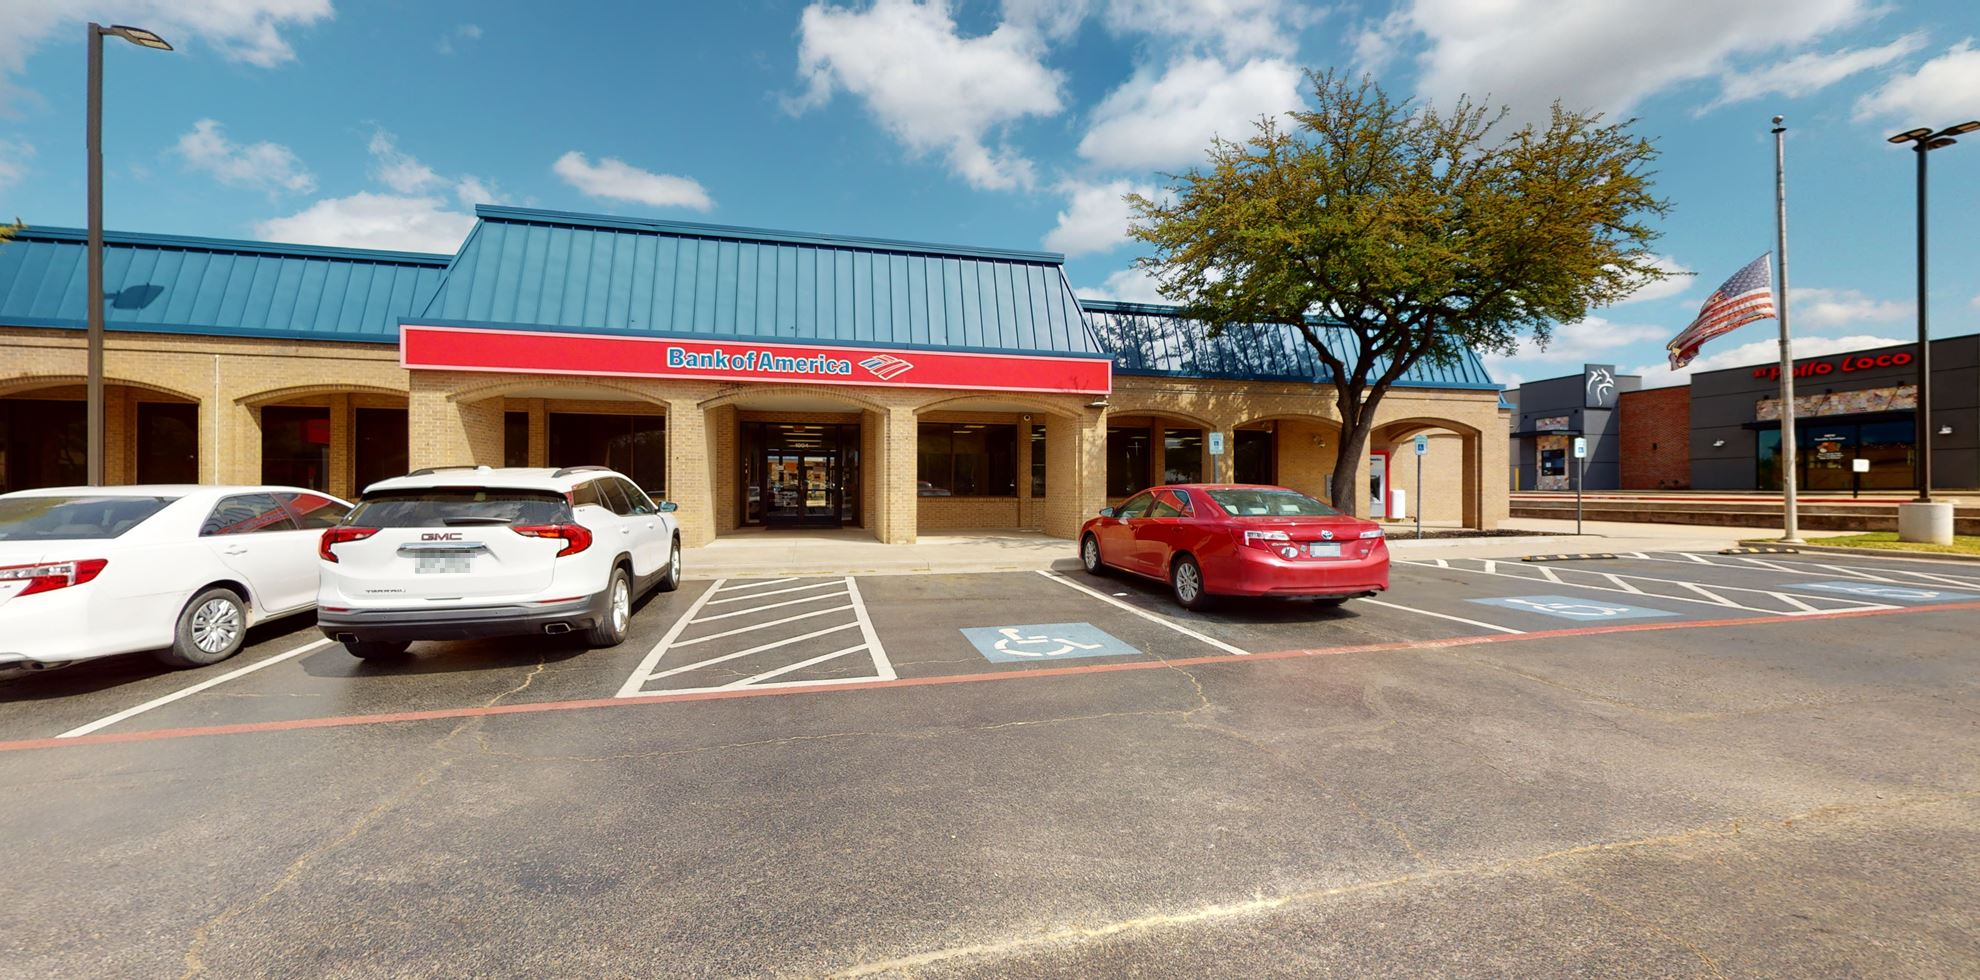 Bank of America financial center with drive-thru ATM   1904 Central Dr, Bedford, TX 76021